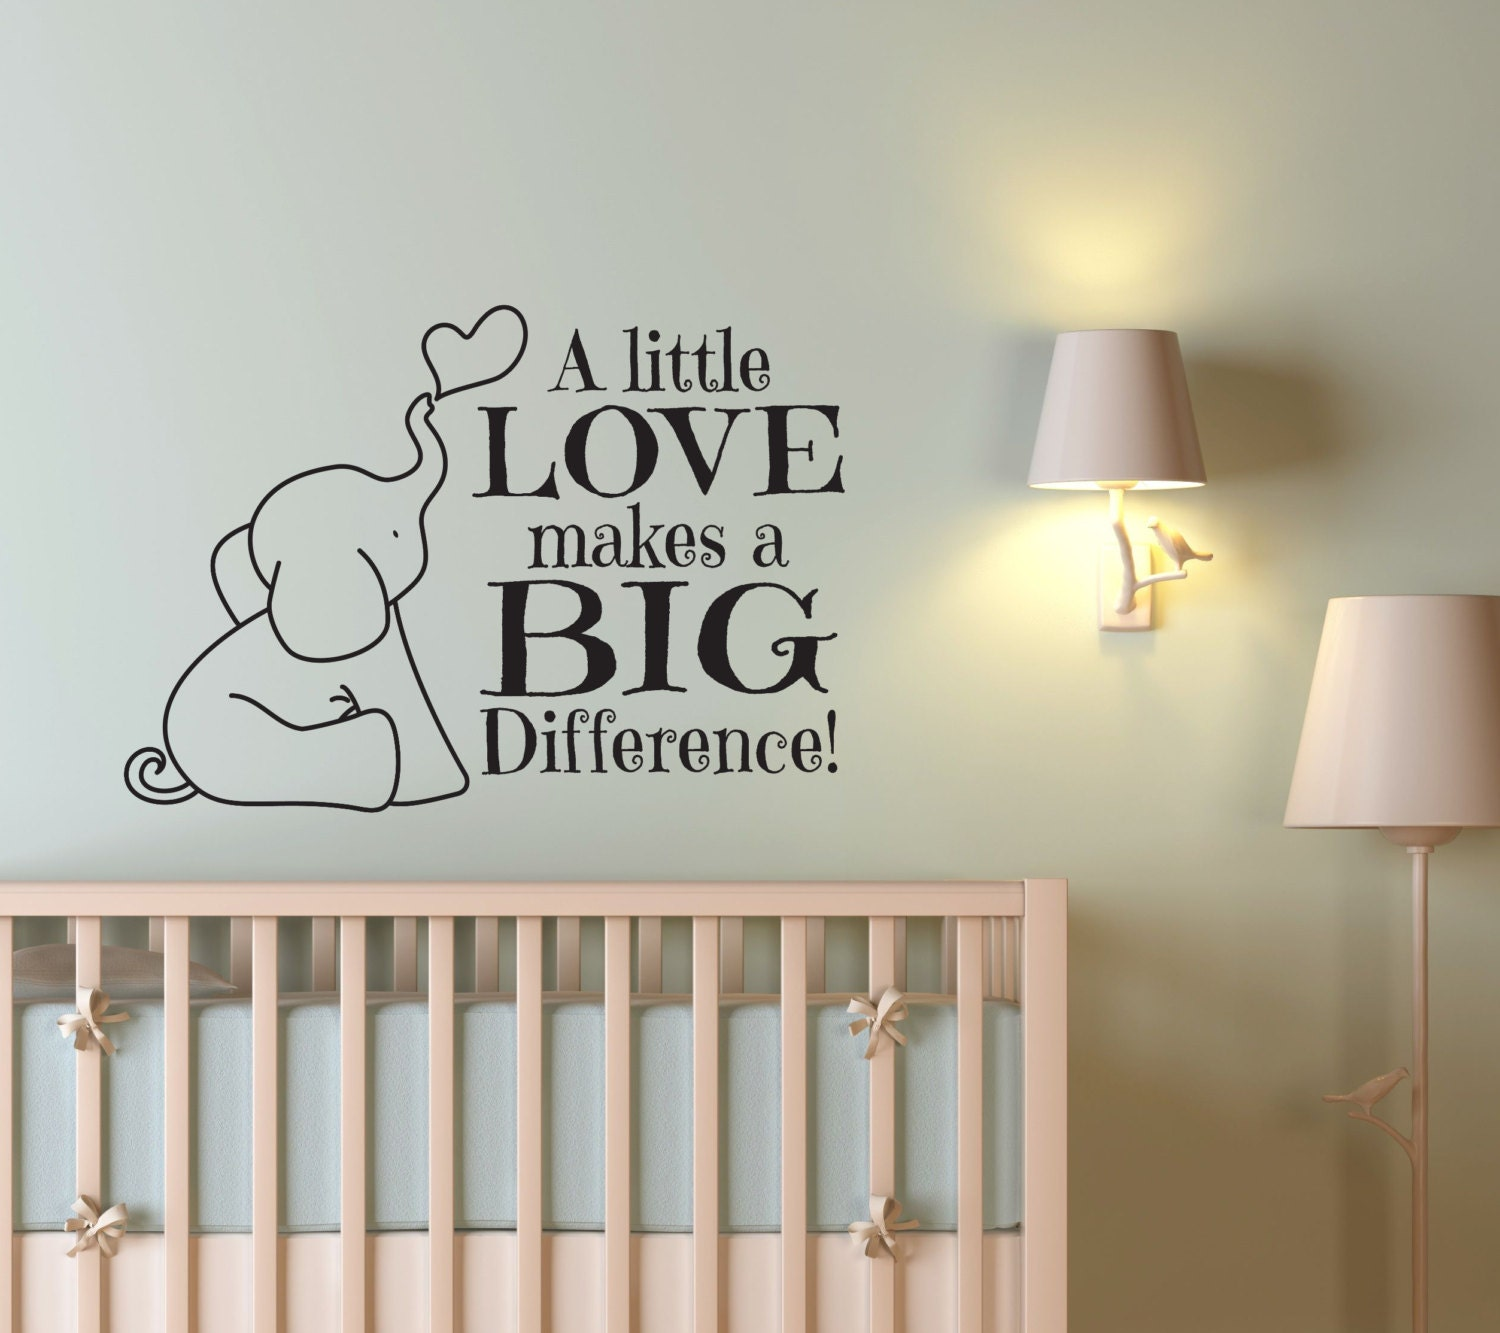 13 Wall Designs Decor Ideas For Nursery: Nursery Decor Elephant Nursery Decor Elephant Wall Decal